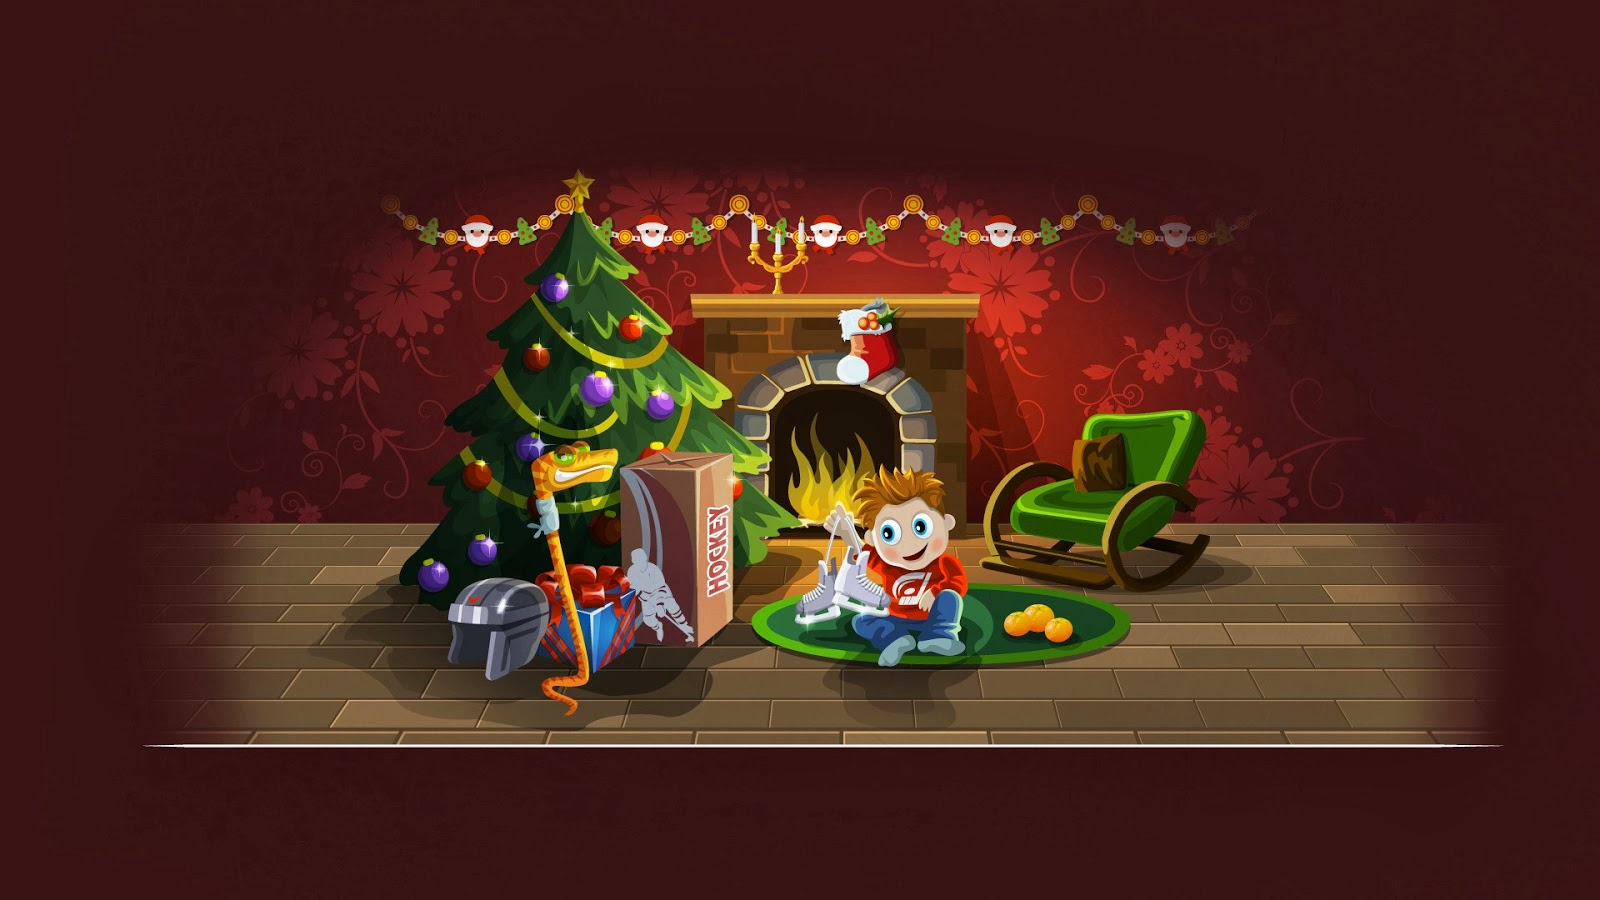 Top 24 Best Free Hd Christmas Wallpapers: Merry Christmas 10 Best High Quality HD Wallpaper Free